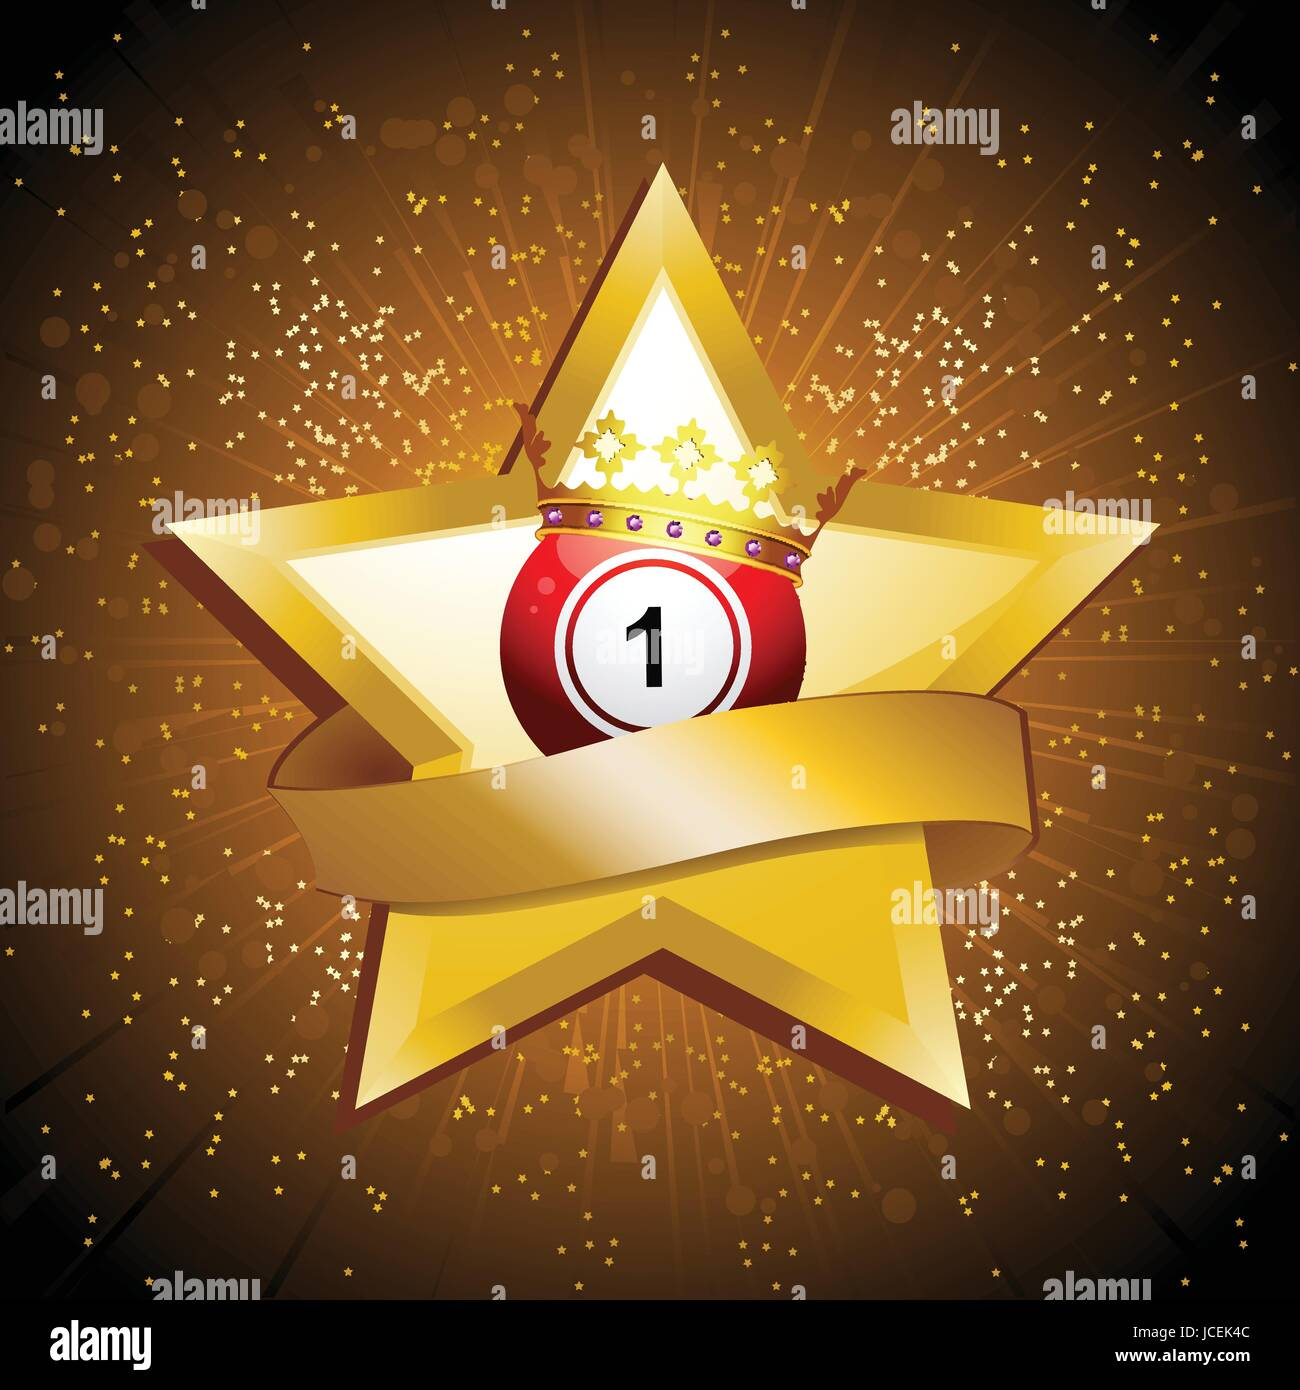 Red Bingo Lottery Ball Number 1 with Crown on Golden Star with Blank Banner Over Golden Star Burst Background - Stock Image